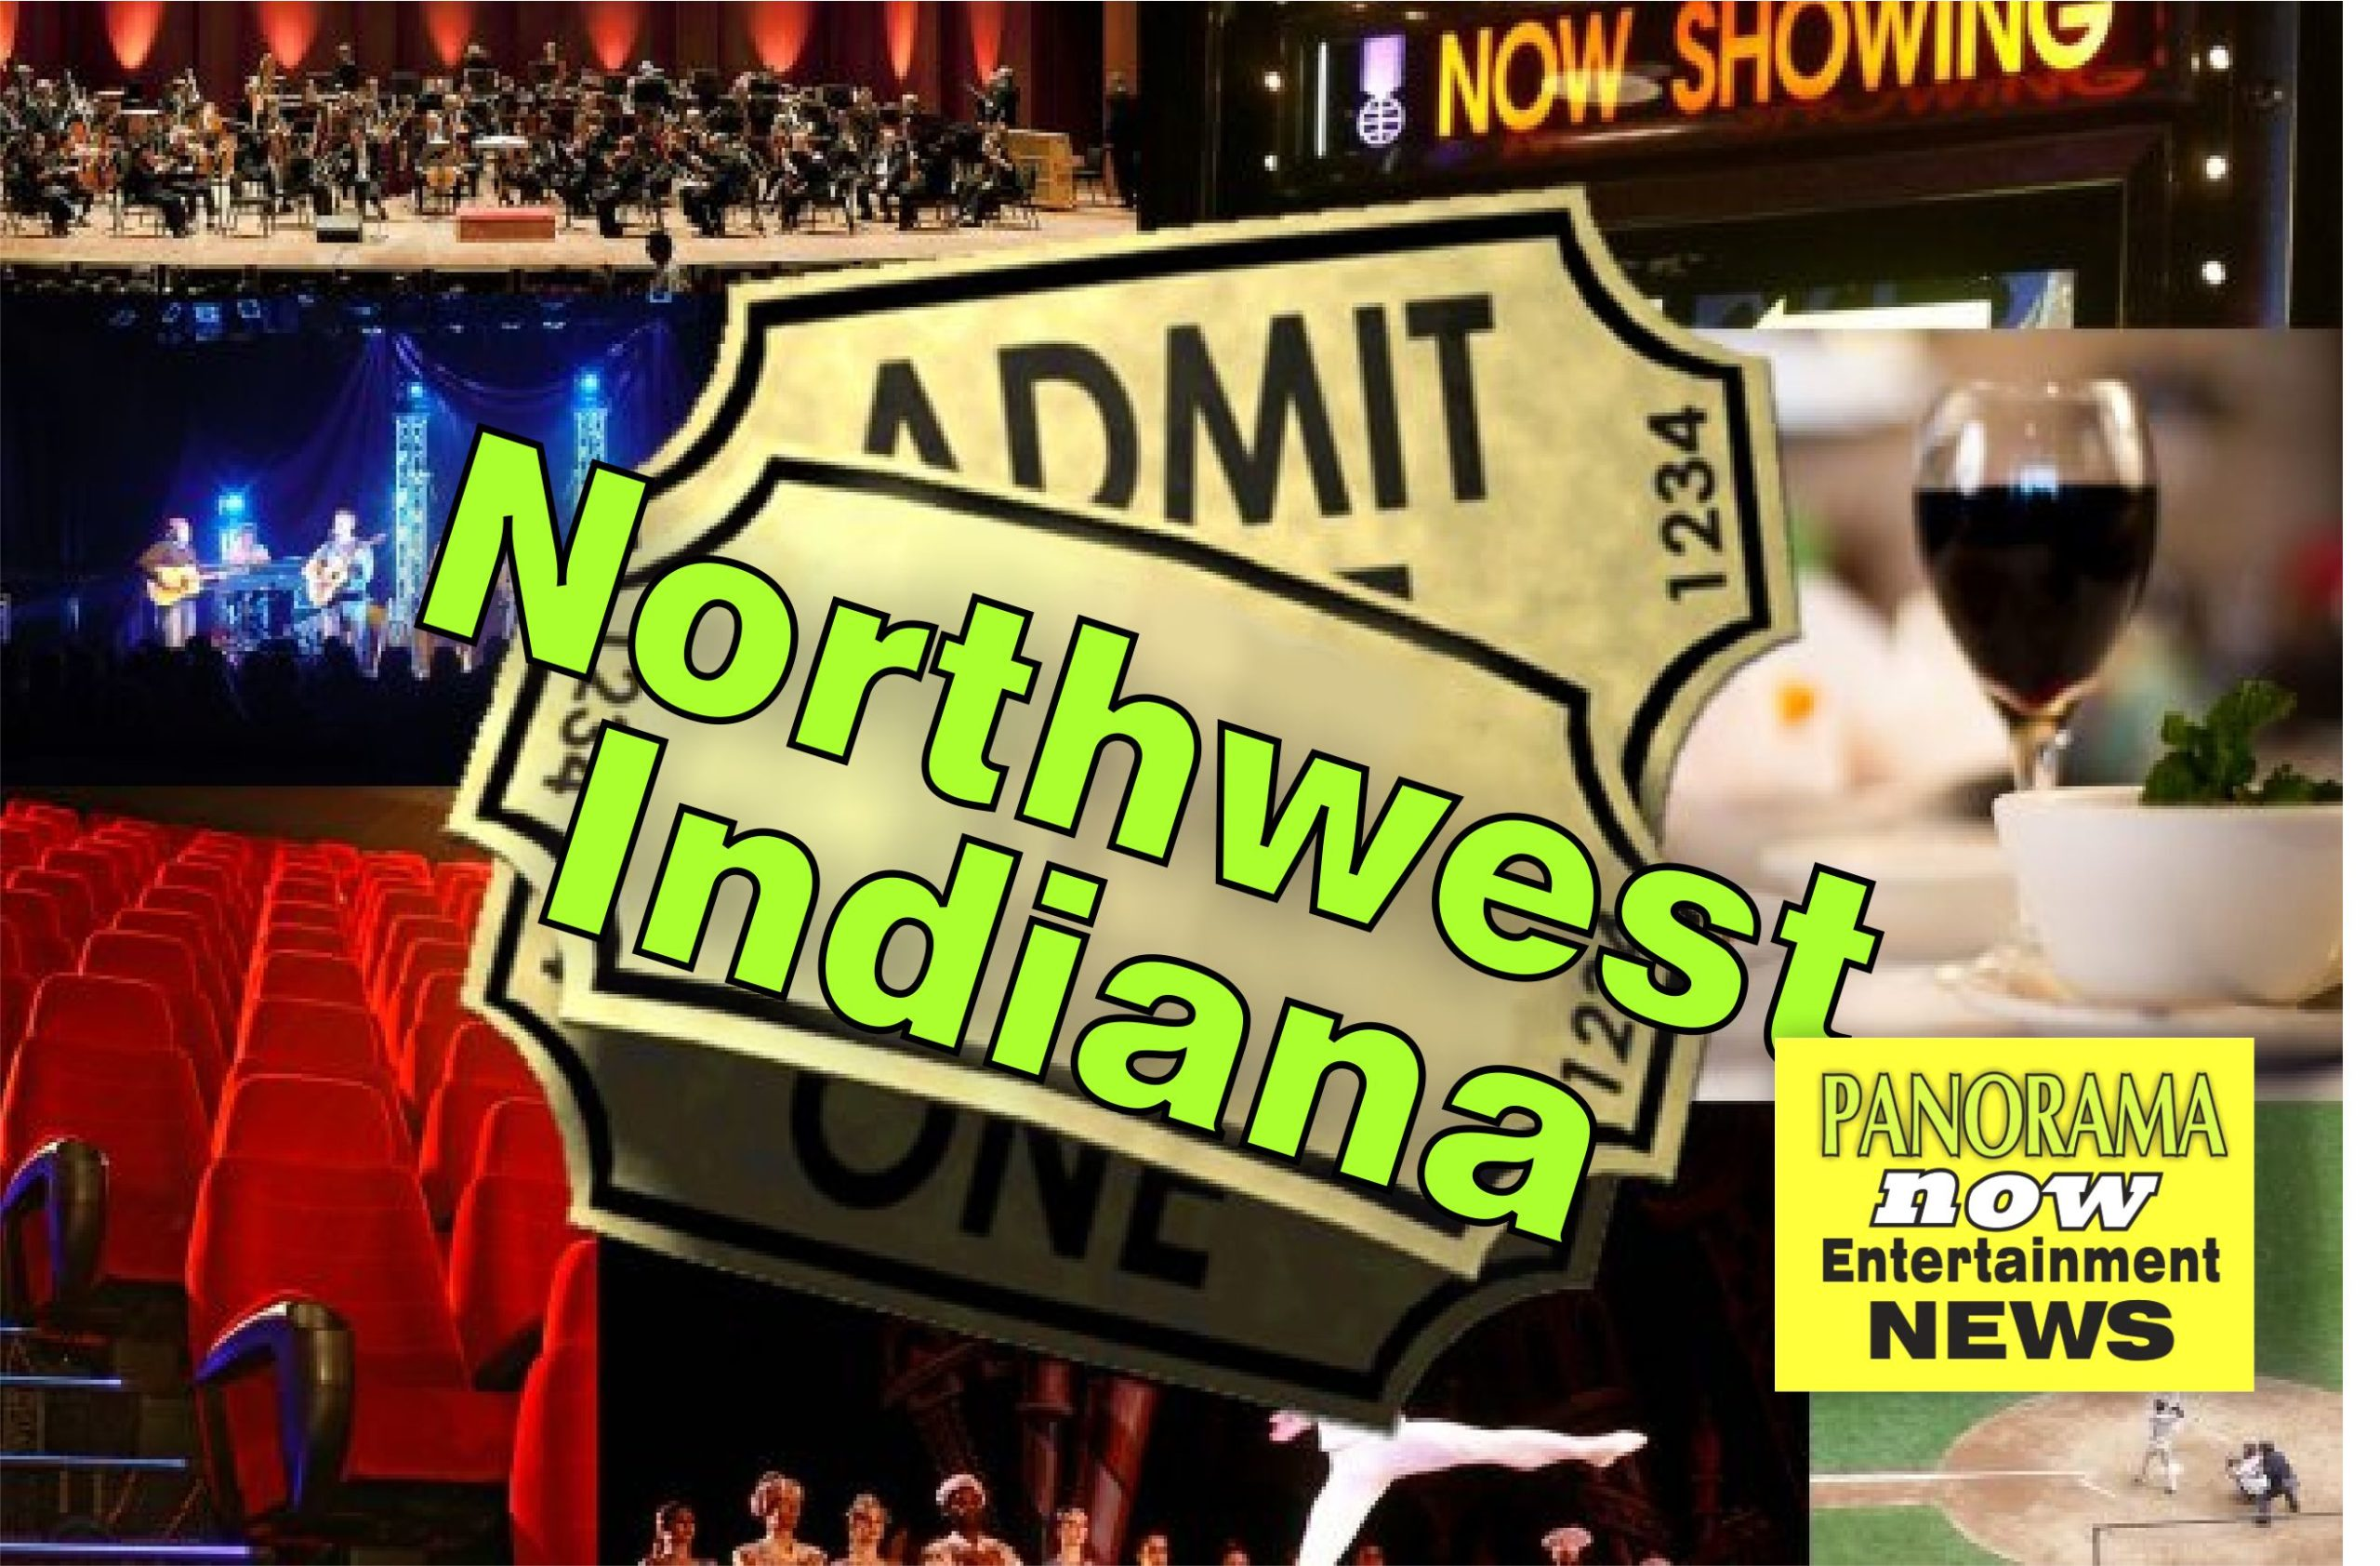 things to do festivals Laporte events calendar northwest indiana panoramanow scaled